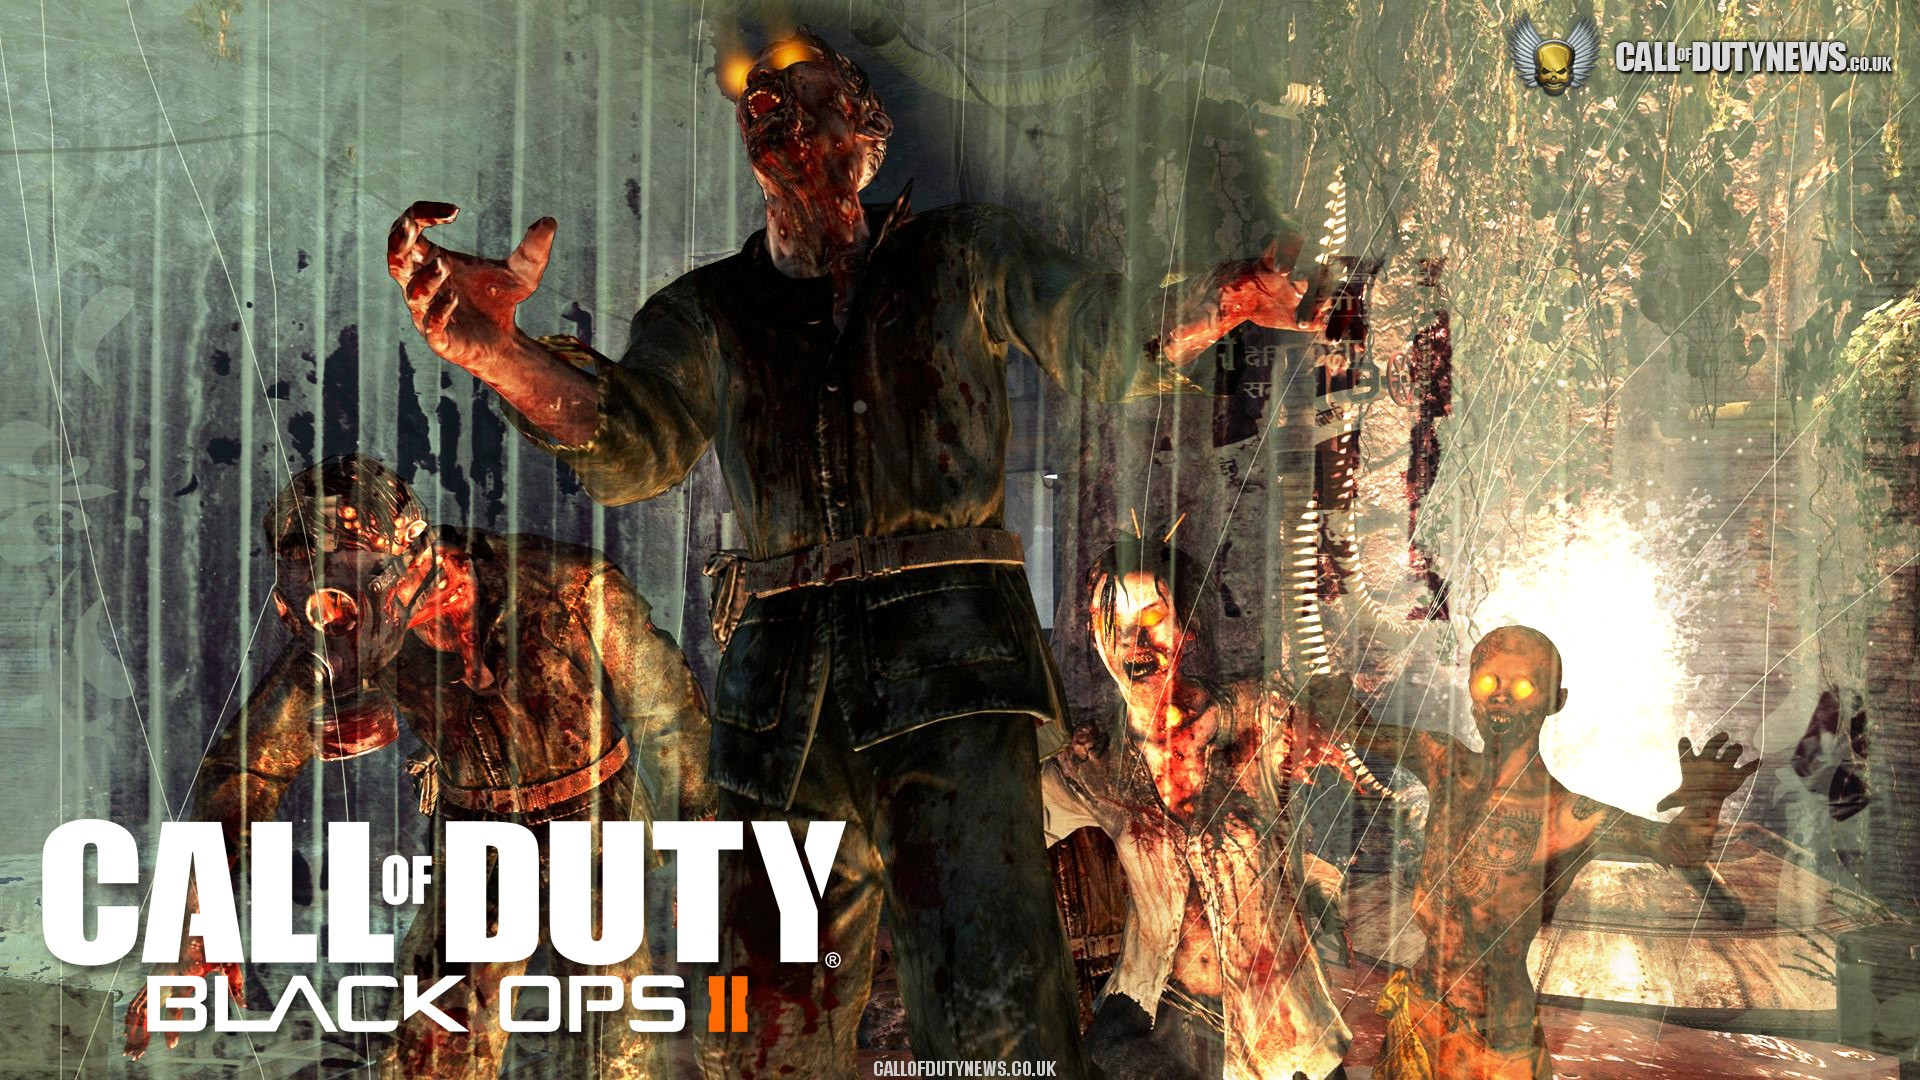 duty black ops 2 zombies wallpaper hdCall Of Duty Black Ops 2 Zombies 1920x1080